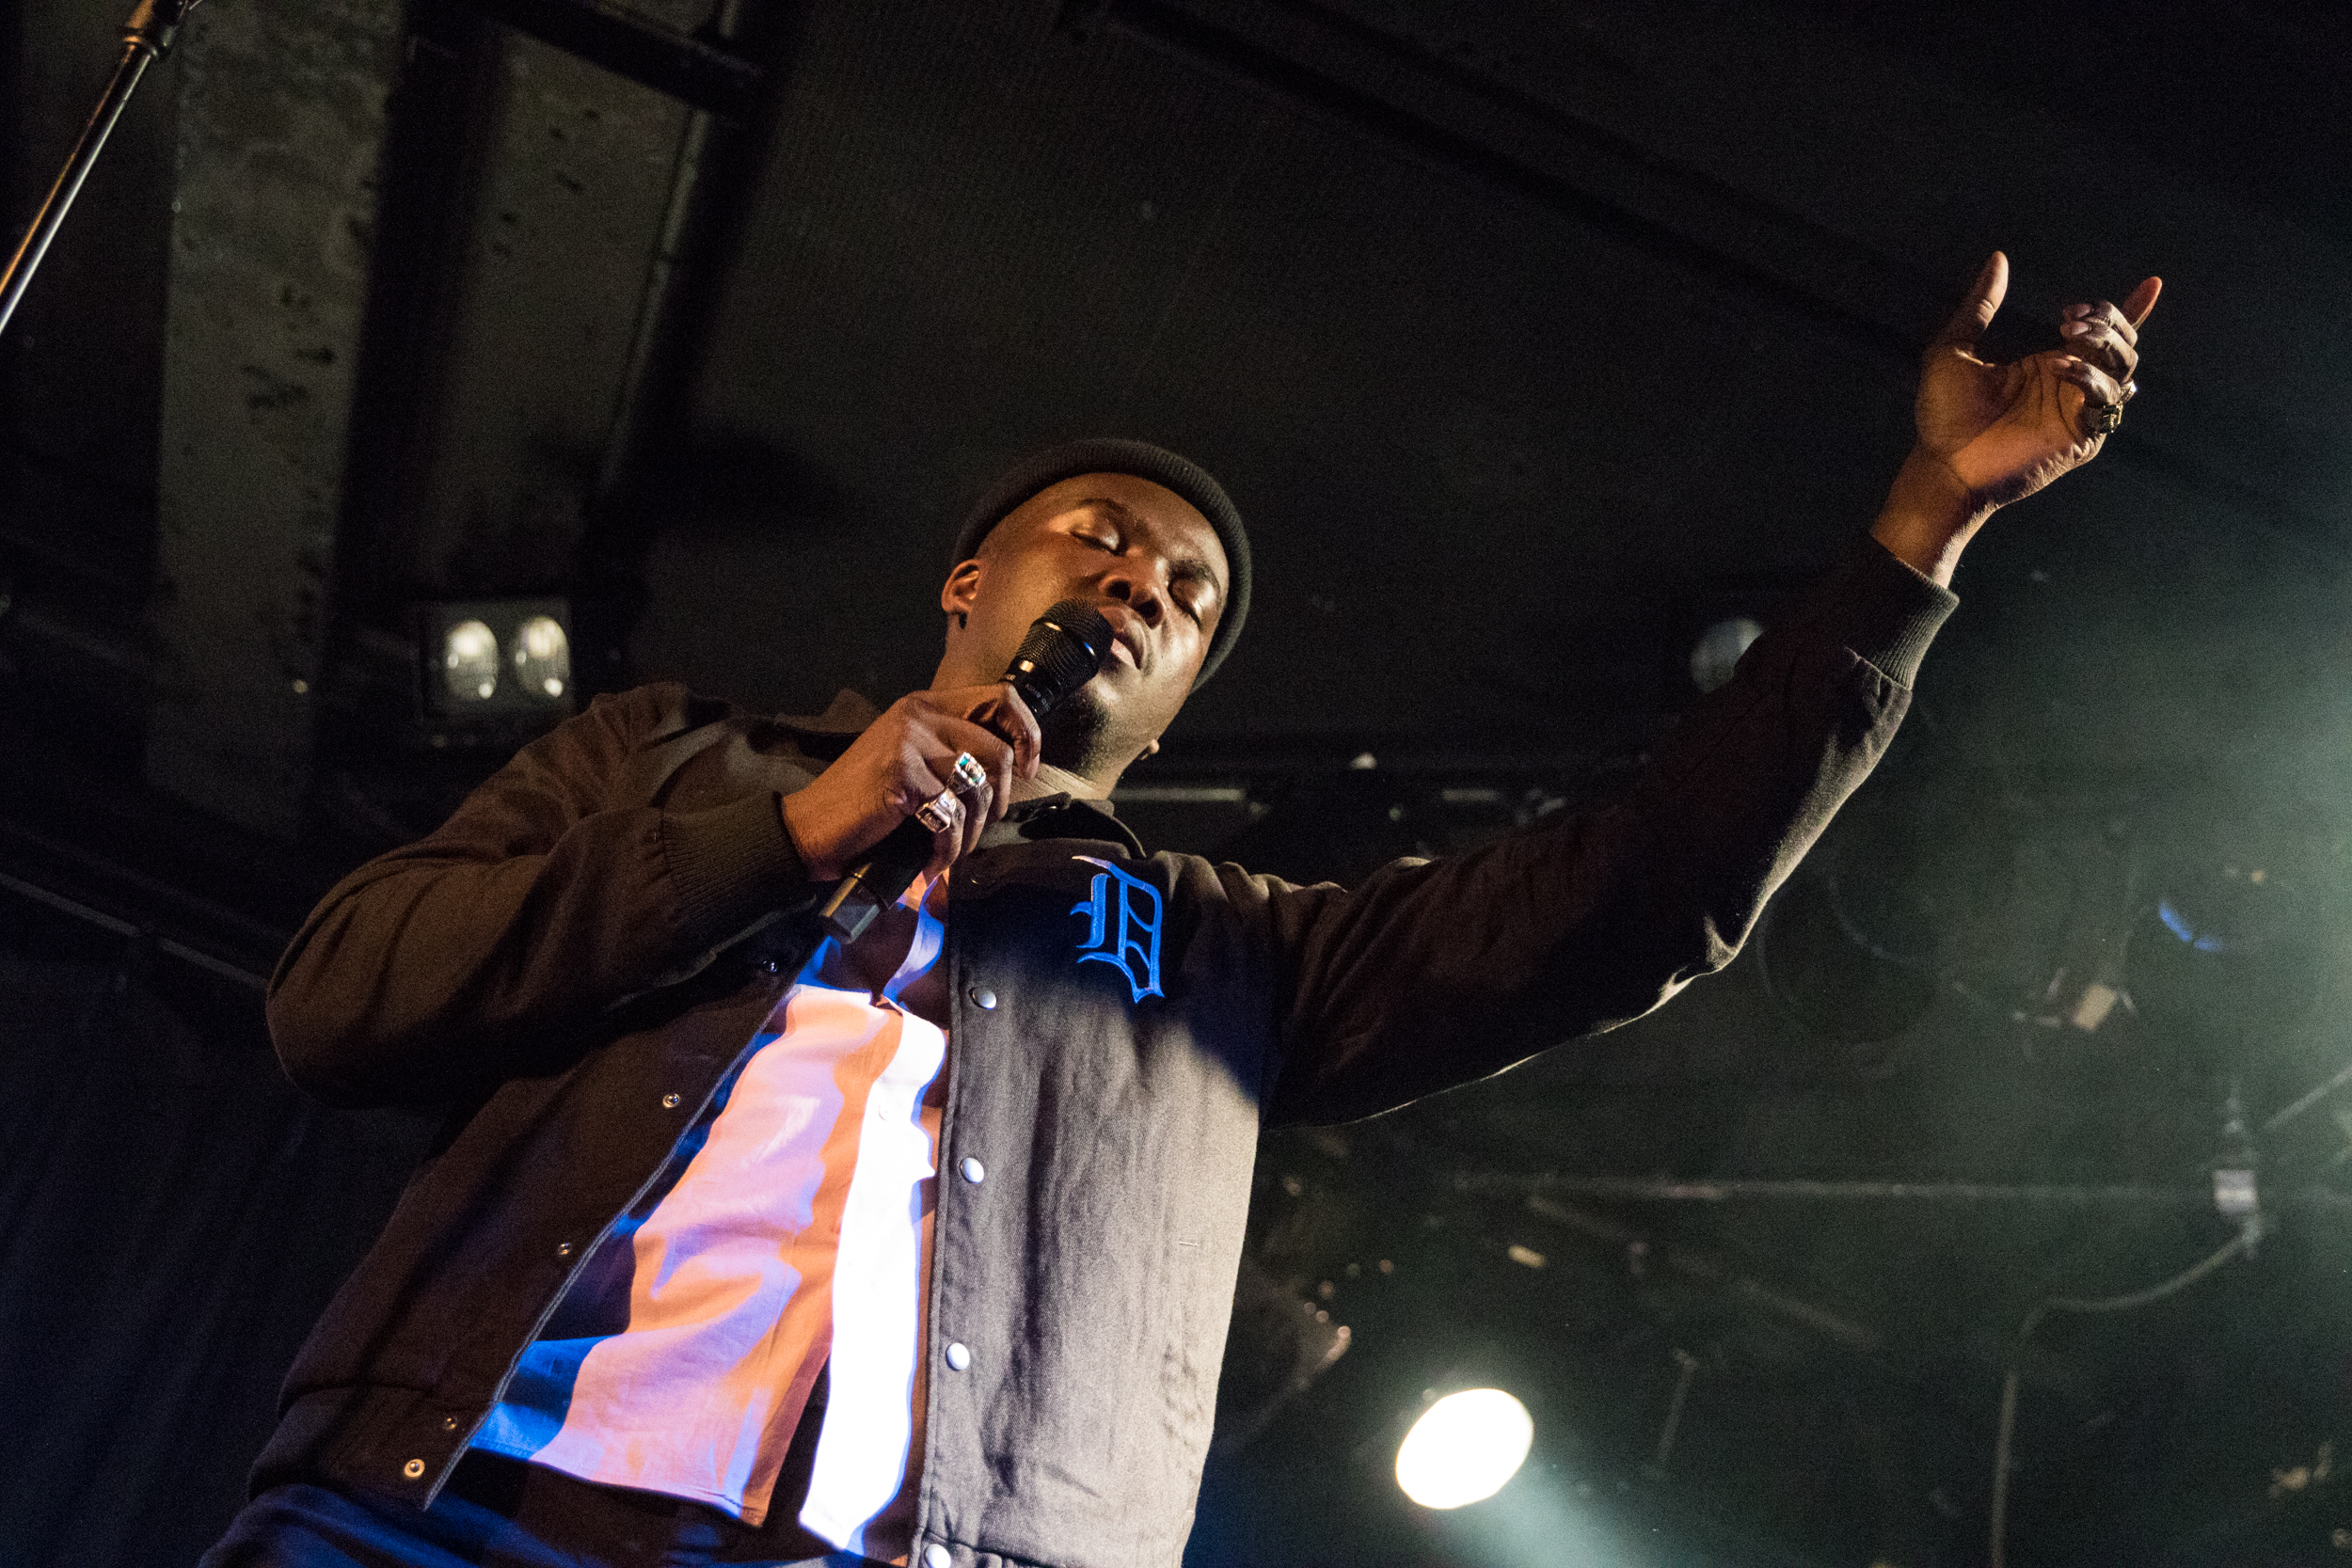 1_JacobBanks_CornerHotel_SarahRix-5994.jpg